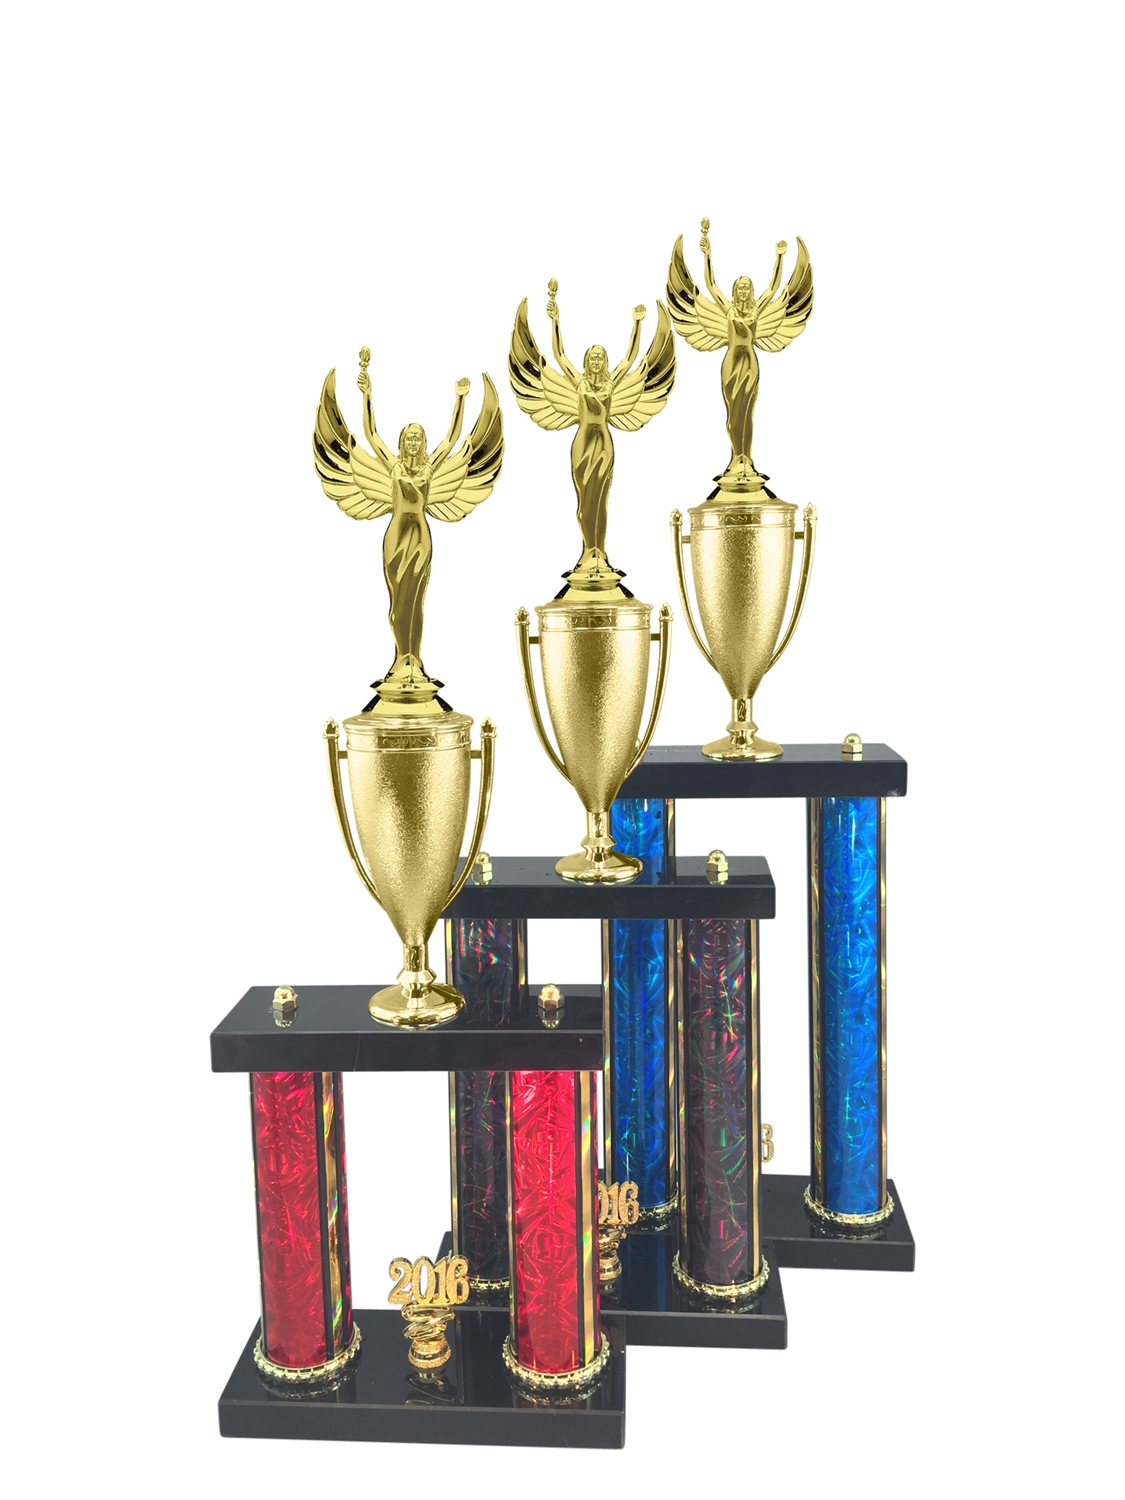 2 Post Female Victory Trophy in 11 Color & 3 Size Options